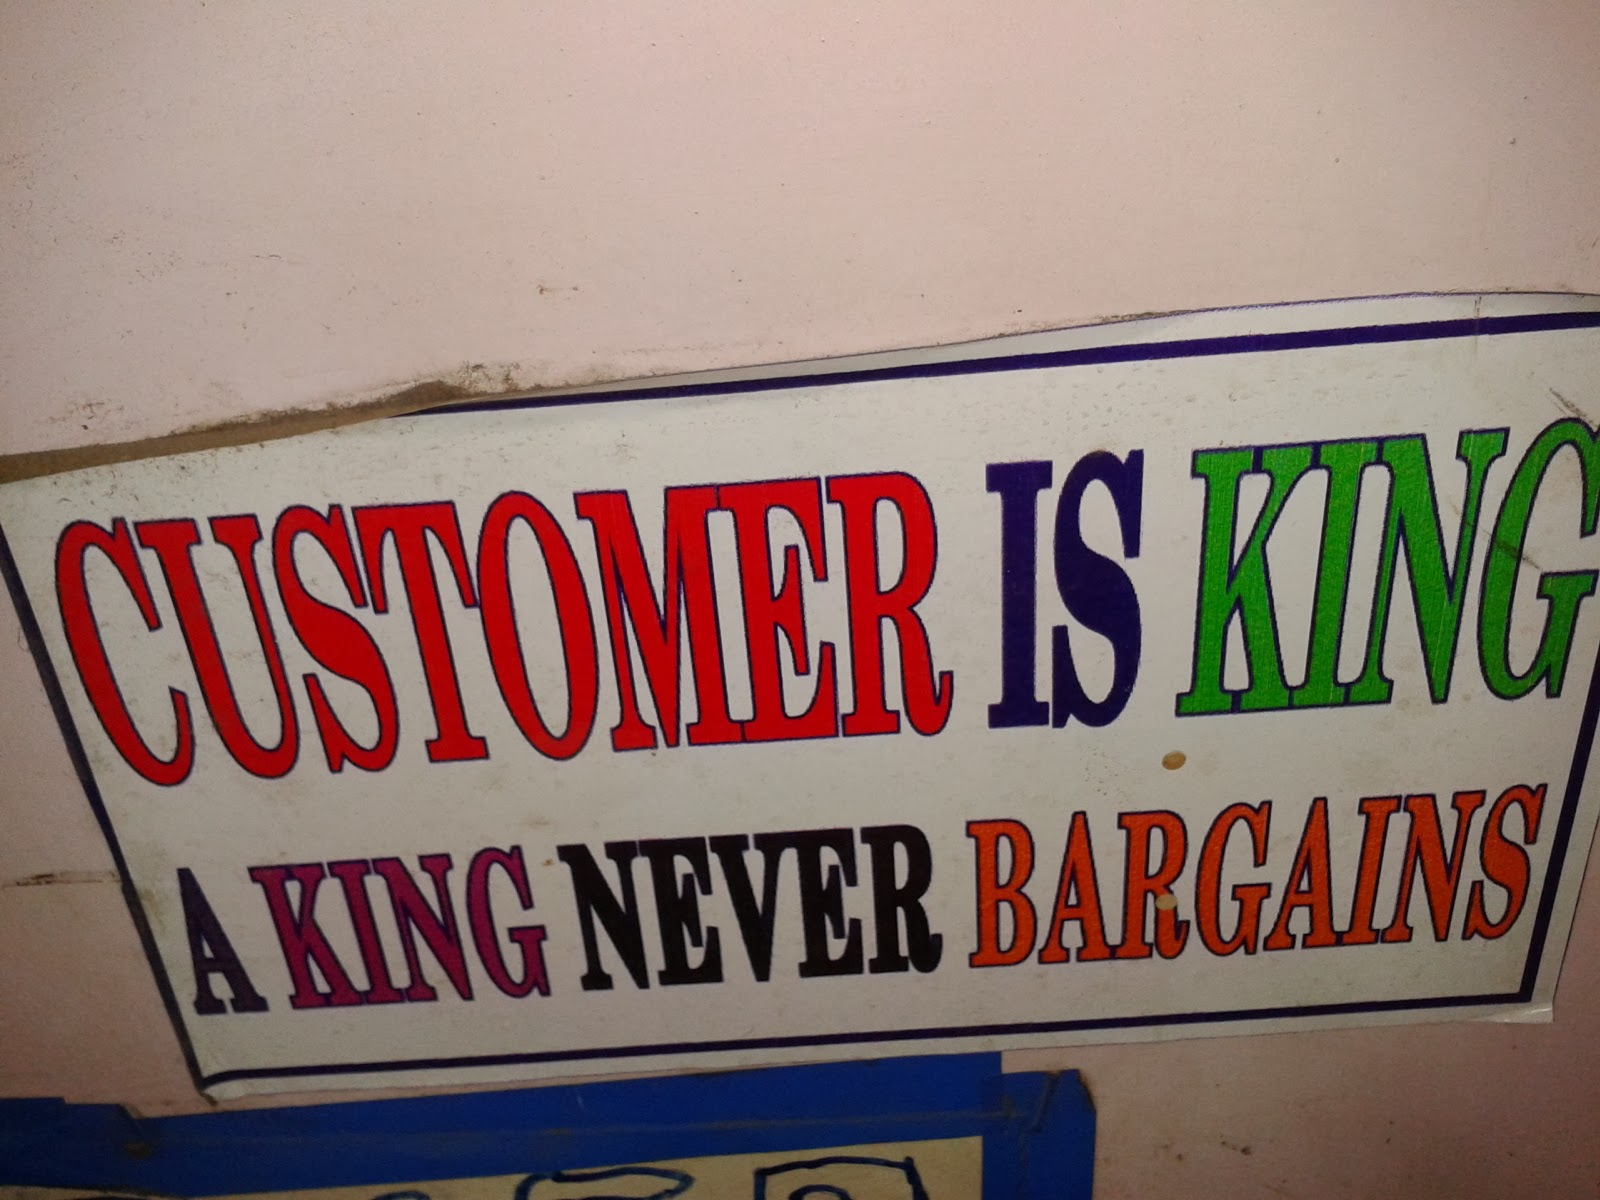 customer is a king essay King essays: over 180,000 king essays, king term papers, king research paper, book reports 184 990 essays, term and research papers available for unlimited access.